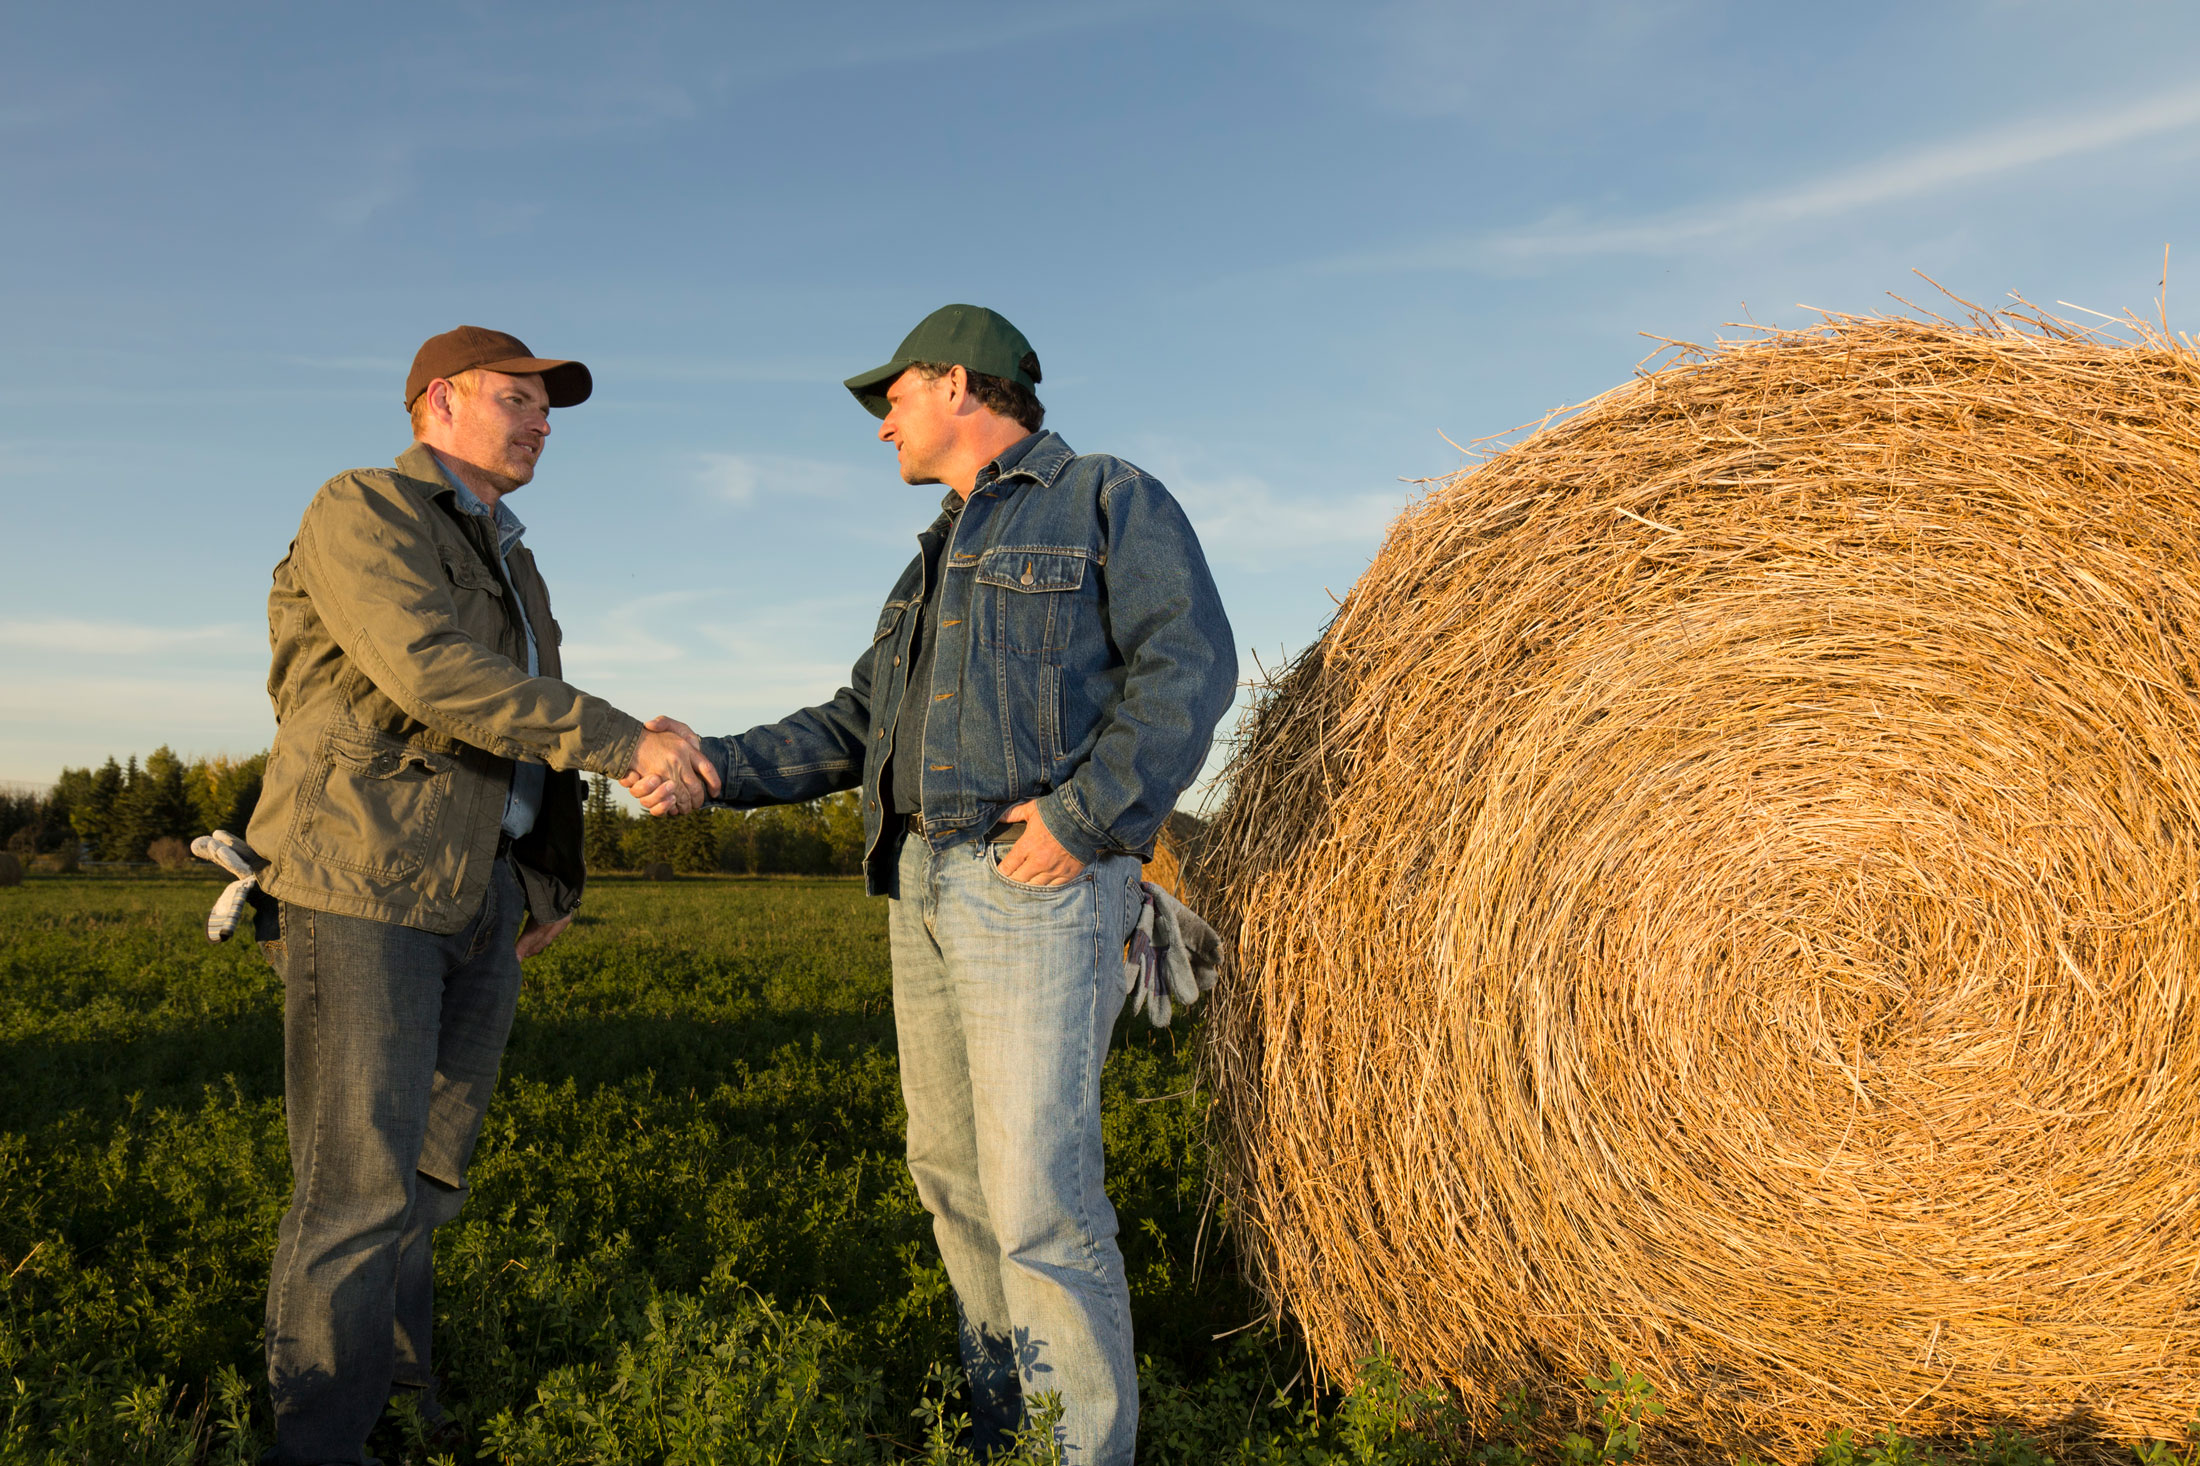 iStock-184996867---farmers-shaking-hands-in-front-of-hay-bale_web.jpg